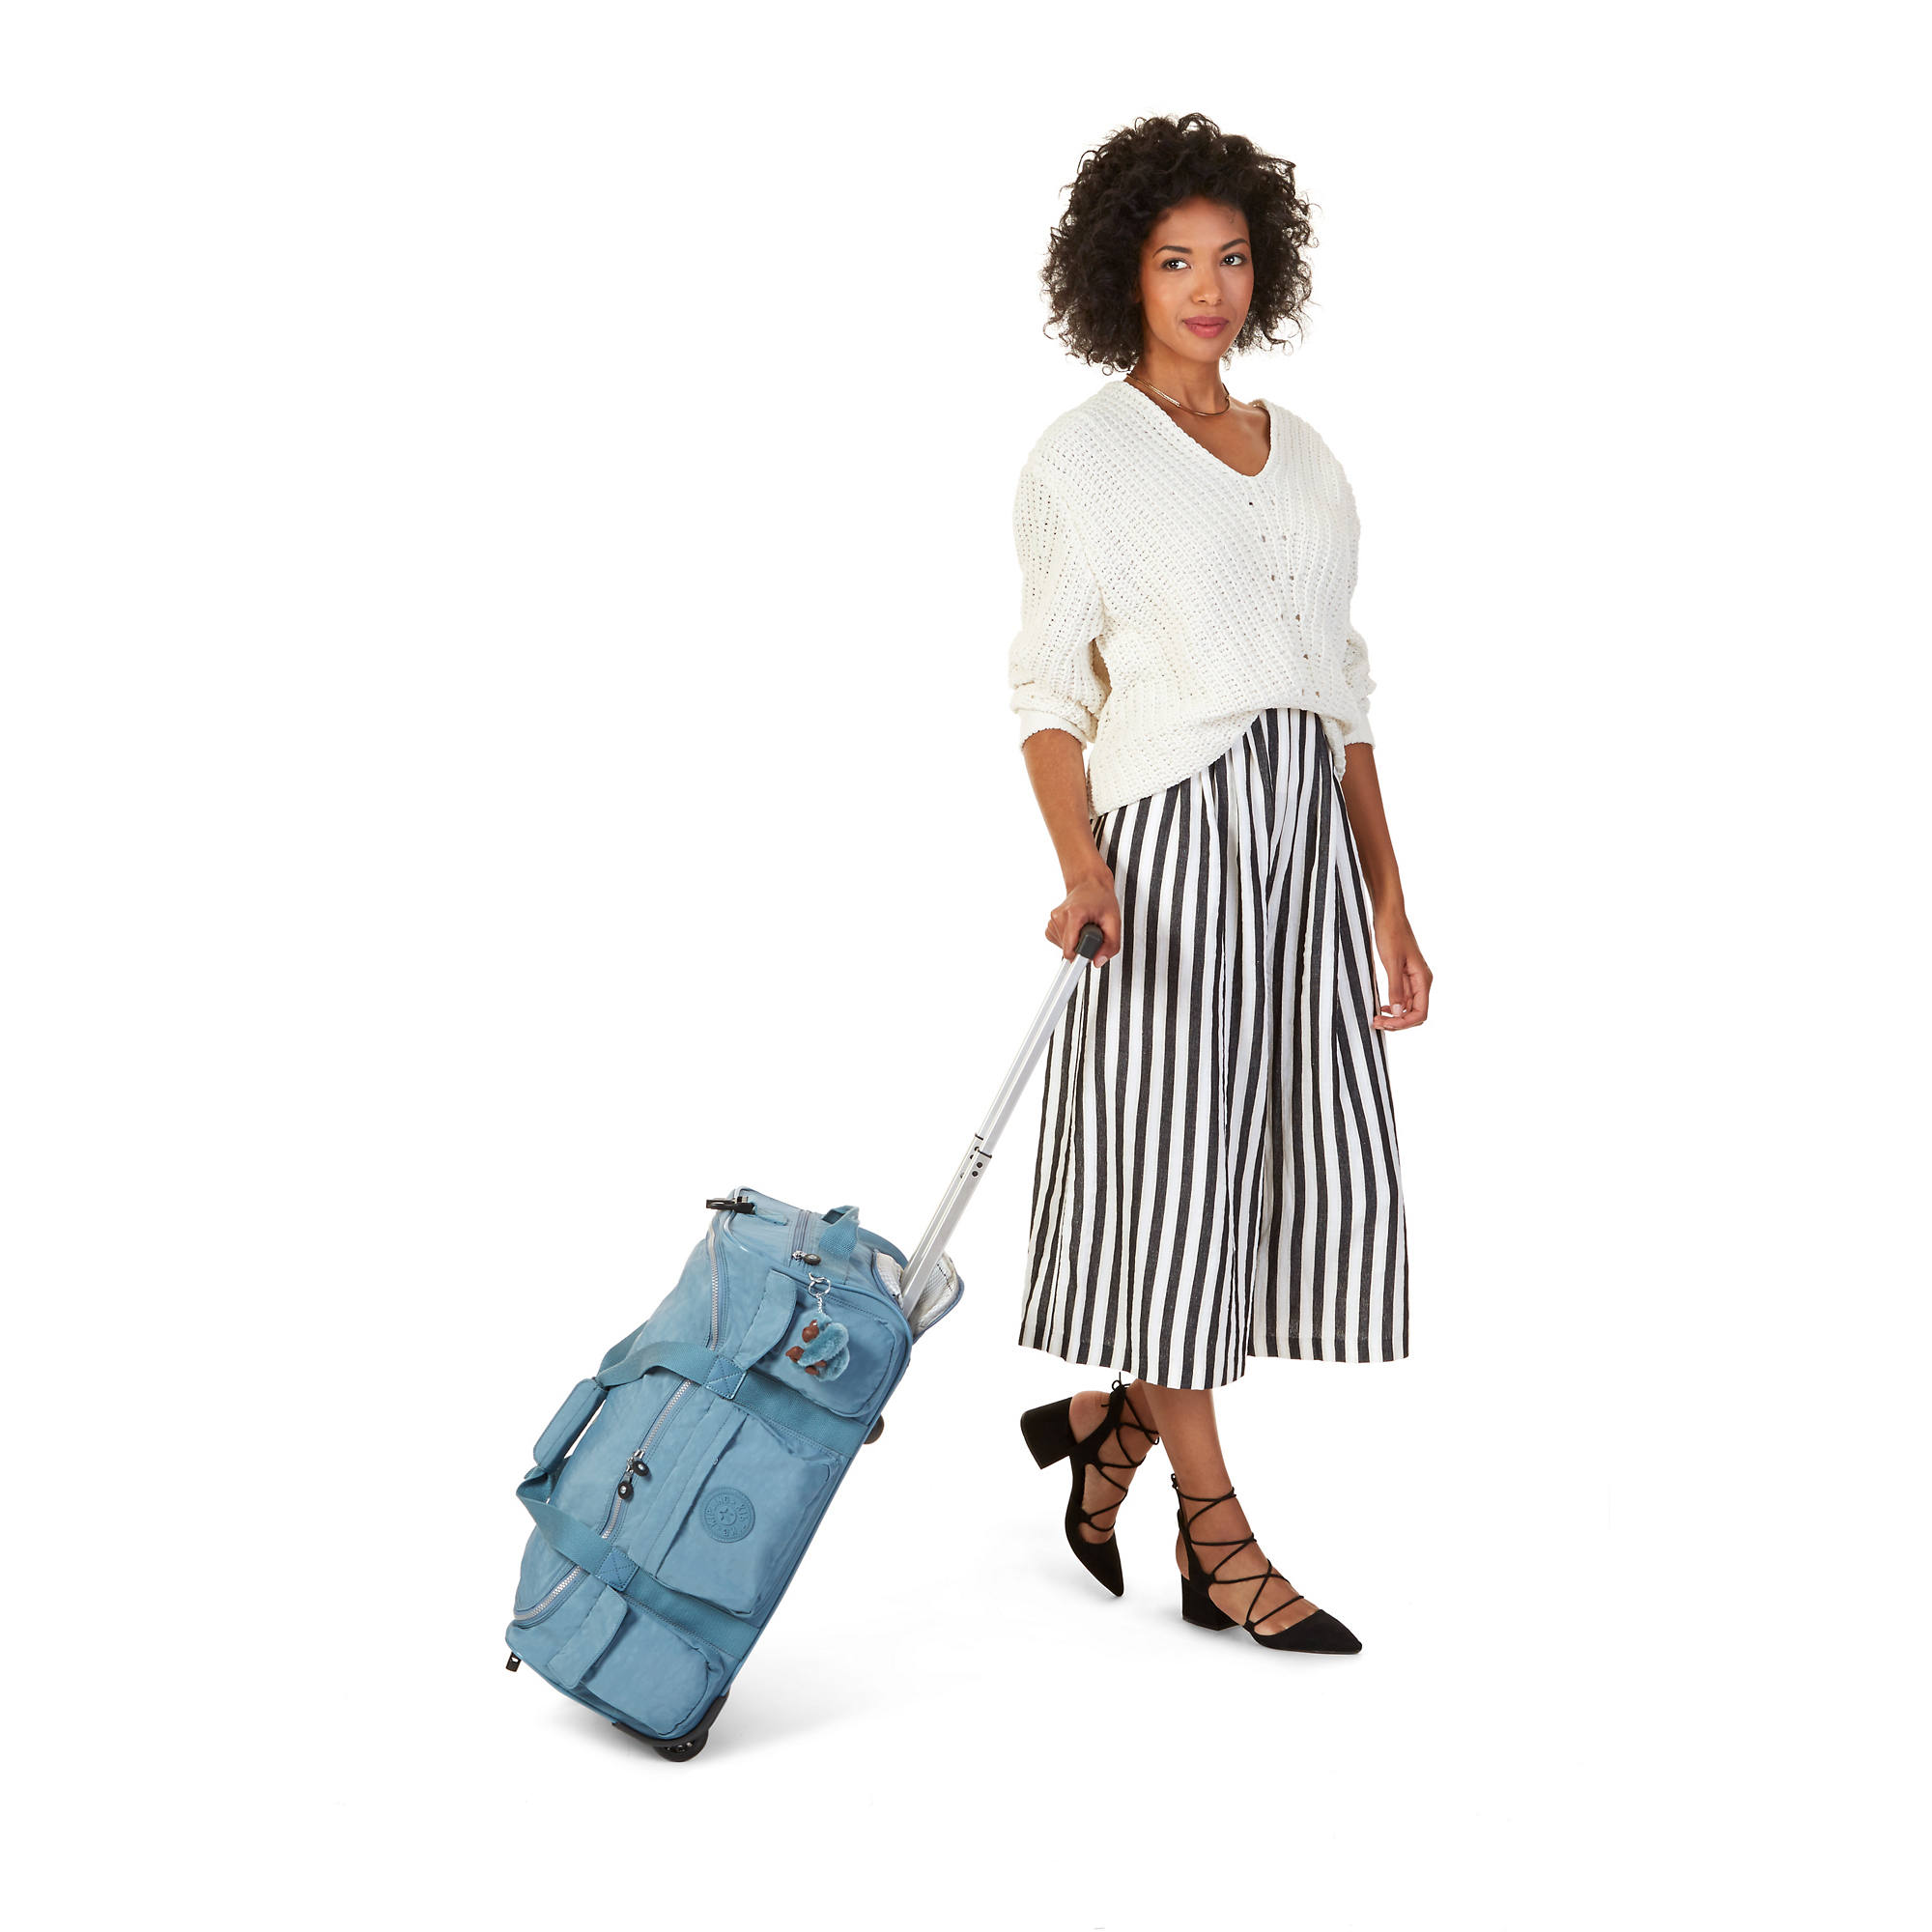 481cce9bbec Discover Small Printed Wheeled Duffel Bag,Hello Weekend,large